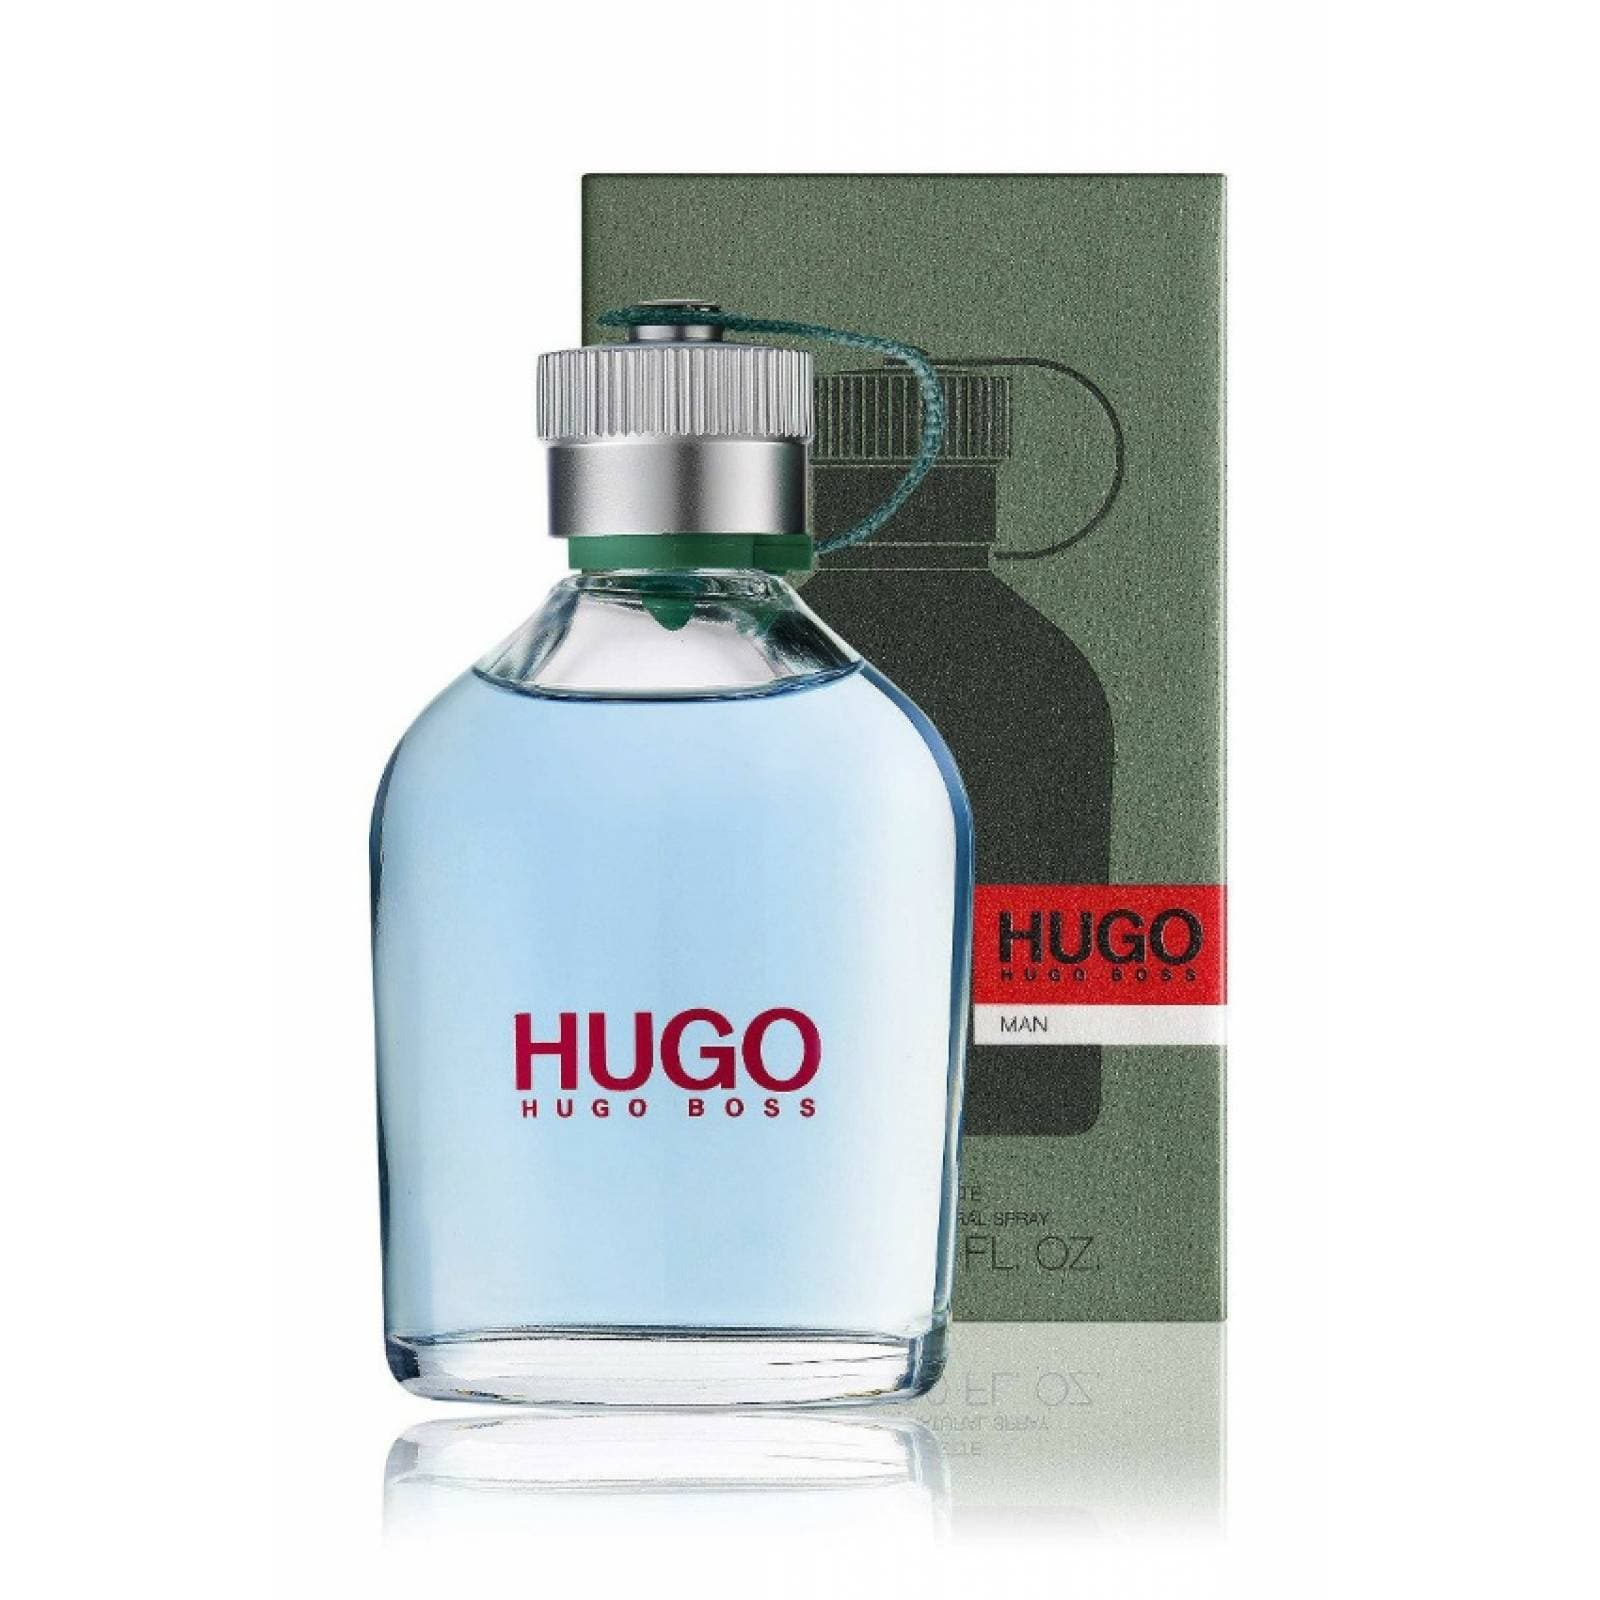 Hugo Green de Hugo Boss Eau de Toilette 125 ml Fragancia para Caballero